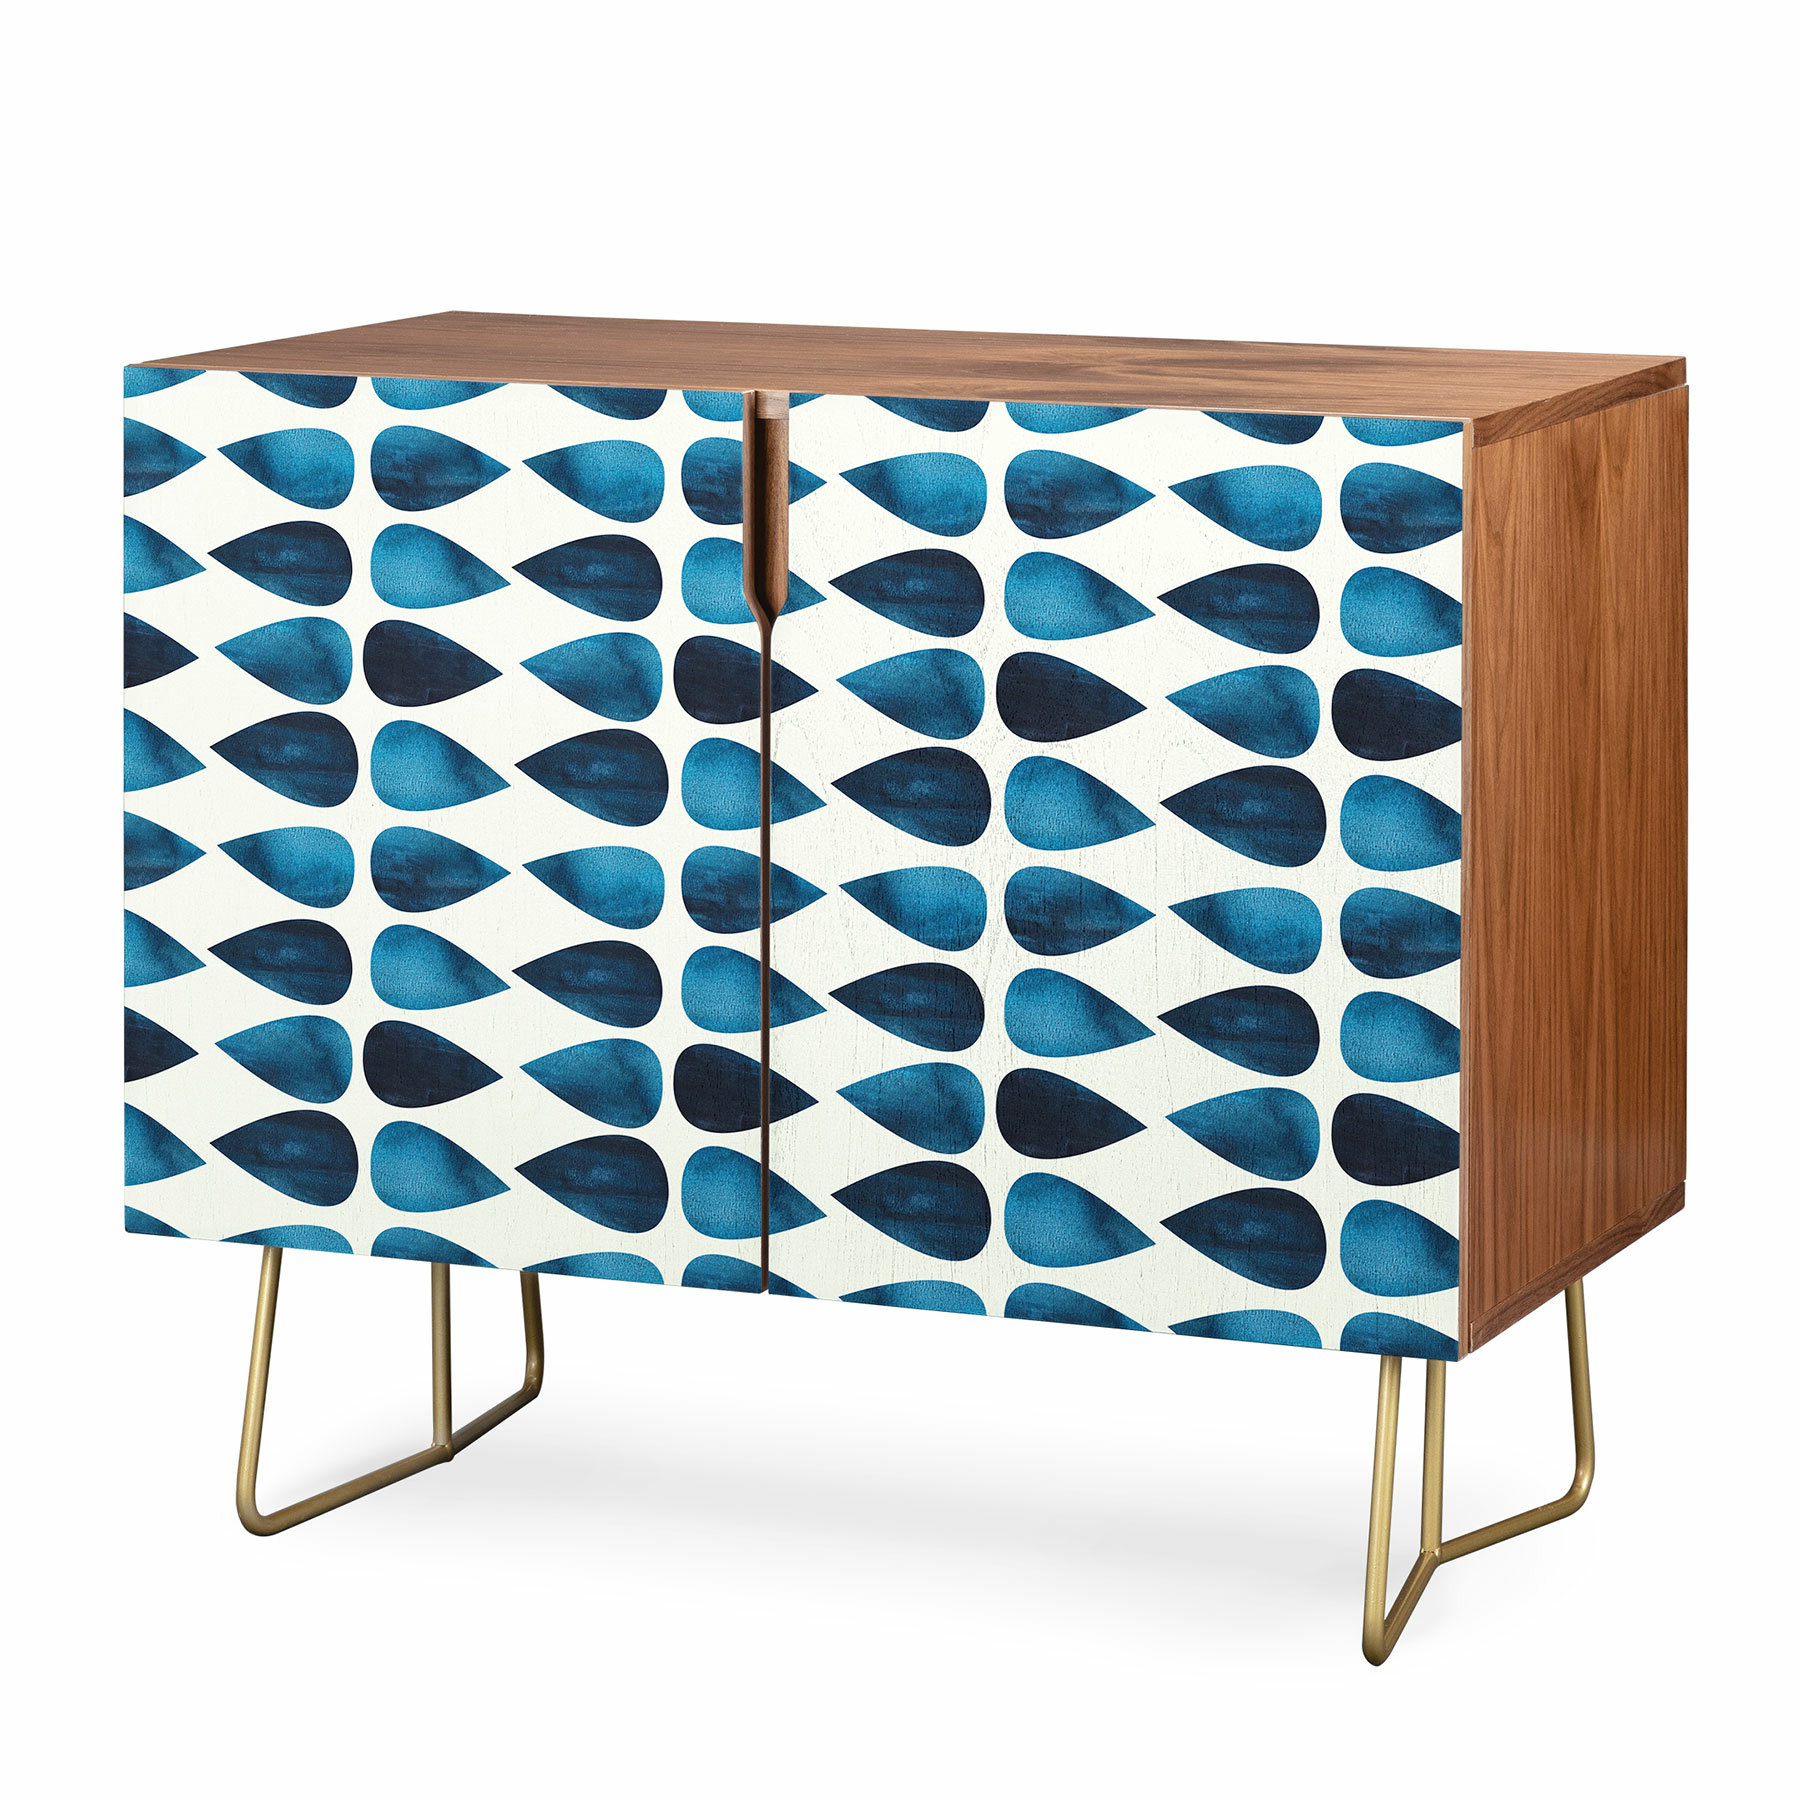 Modern East Urban Home Sideboards + Buffets | Allmodern Intended For Modele 7 Geometric Credenzas (View 14 of 20)